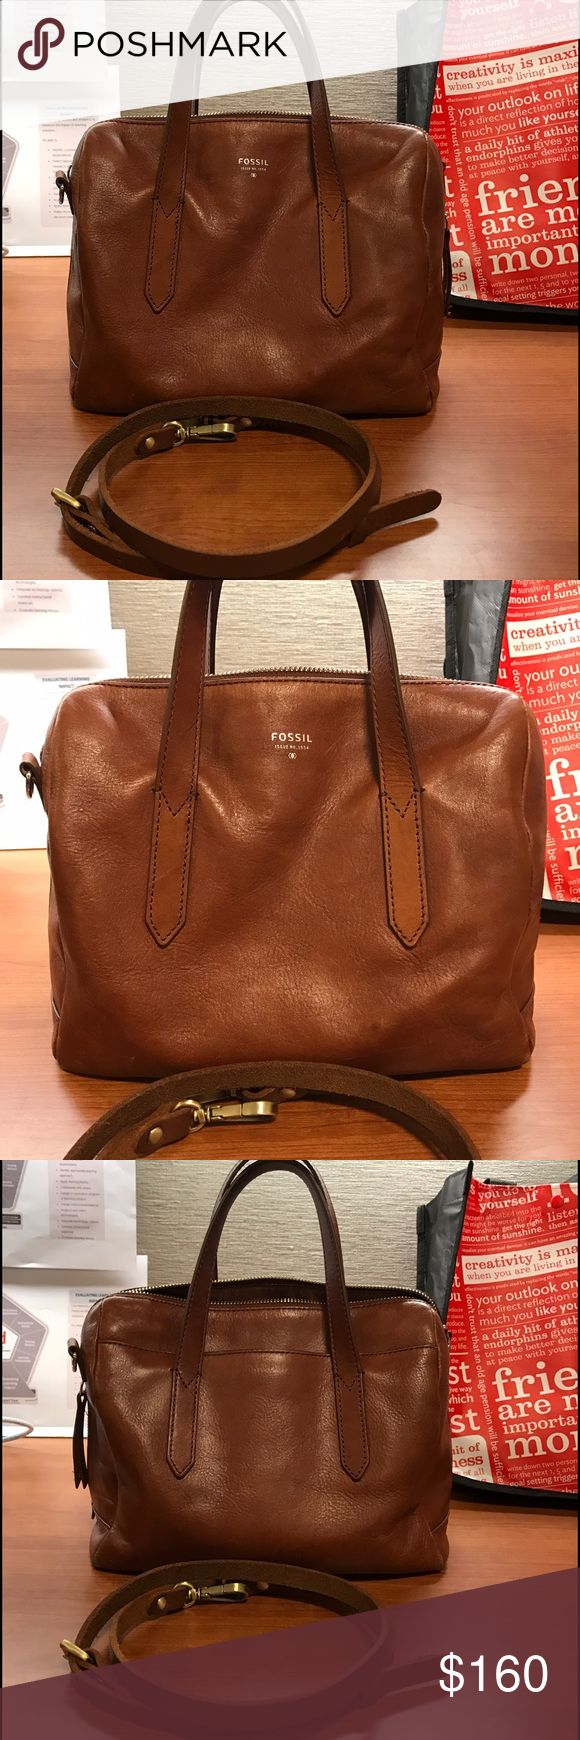 Fossil Sydney satchel crossbody in camel brown There's wear on the bottom corners of the bag and top corner near left side of zipper. Makeup powder on one zipper bag otherwise no tears. No rips. The covertible strap is a replacement to original fossil, non name brand leather strap. Fossil Bags Satchels